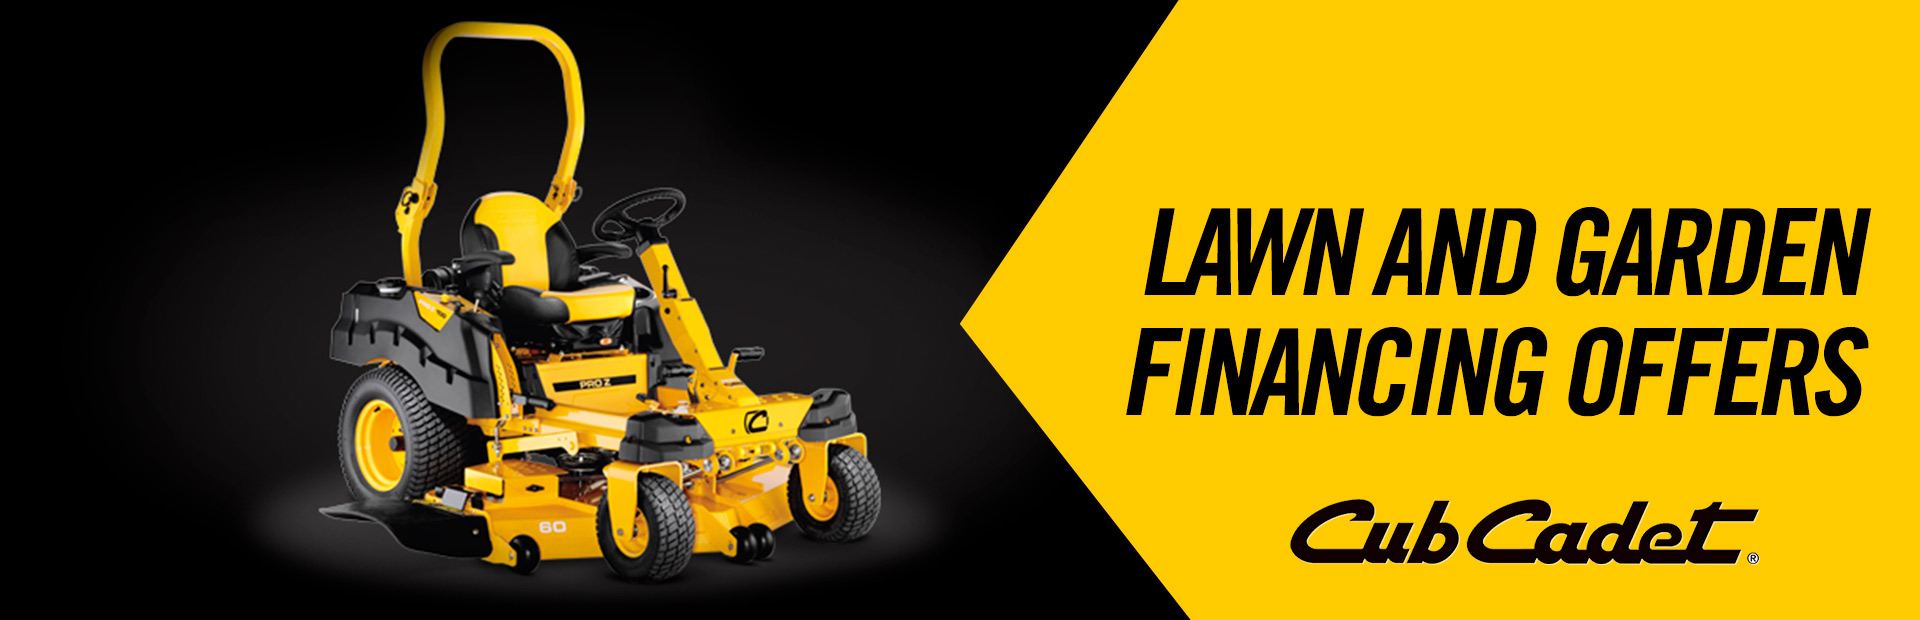 Cub Cadet: Lawn and Garden Financing Offers